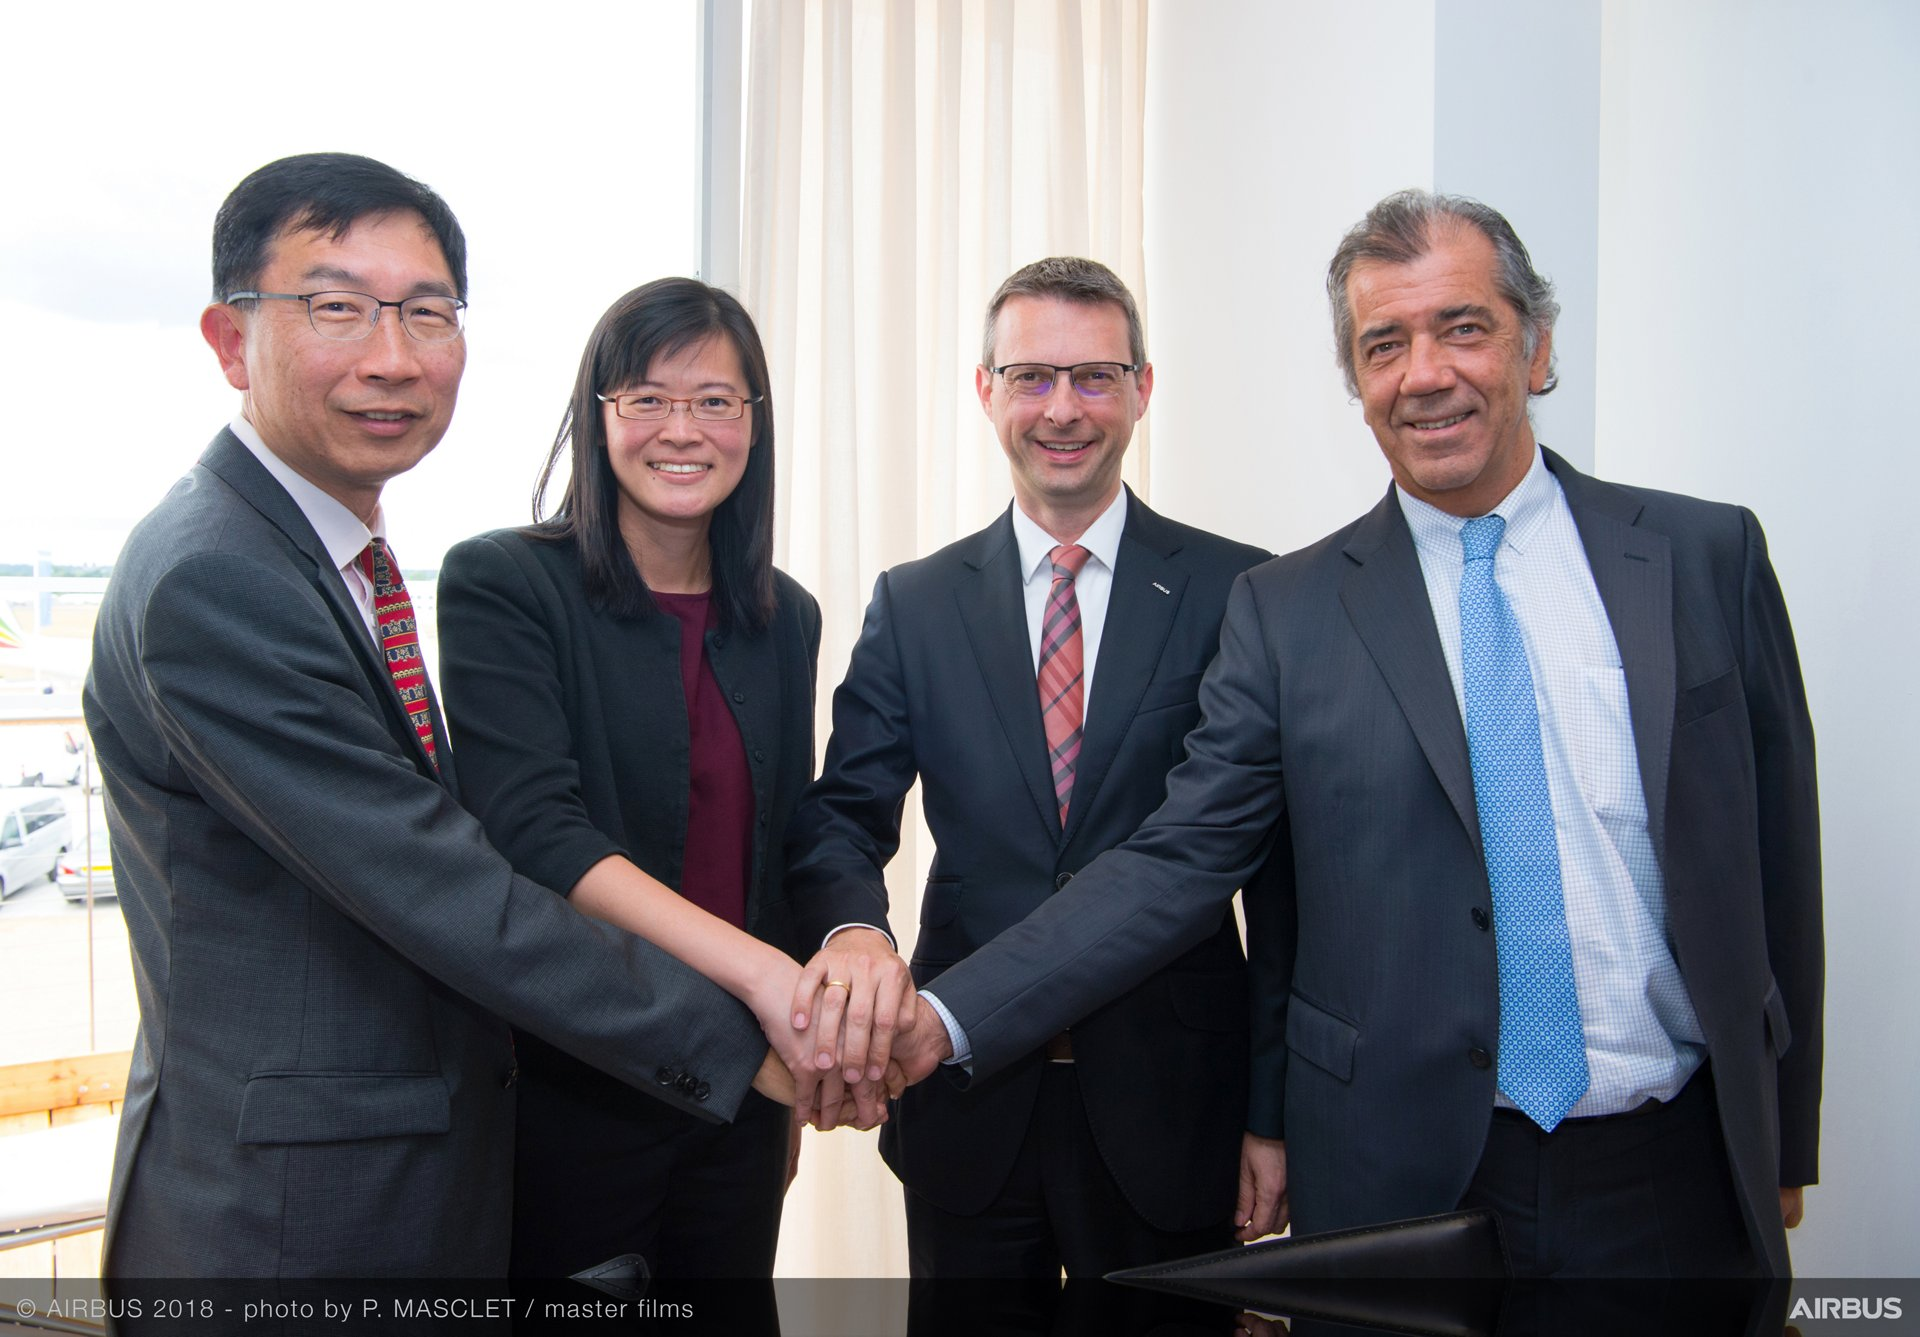 Left to right: DSTA Chief Executive Mr Tan Peng Yam; DSTA Director Air Systems Ms Ngiam Le Na; Airbus Defence and Space Head of Military Aircraft Services Stephan Miegel; and Airbus Defence and Space Head of Military Aircraft, Fernando Alonso after the signing at Farnborough Airshow.